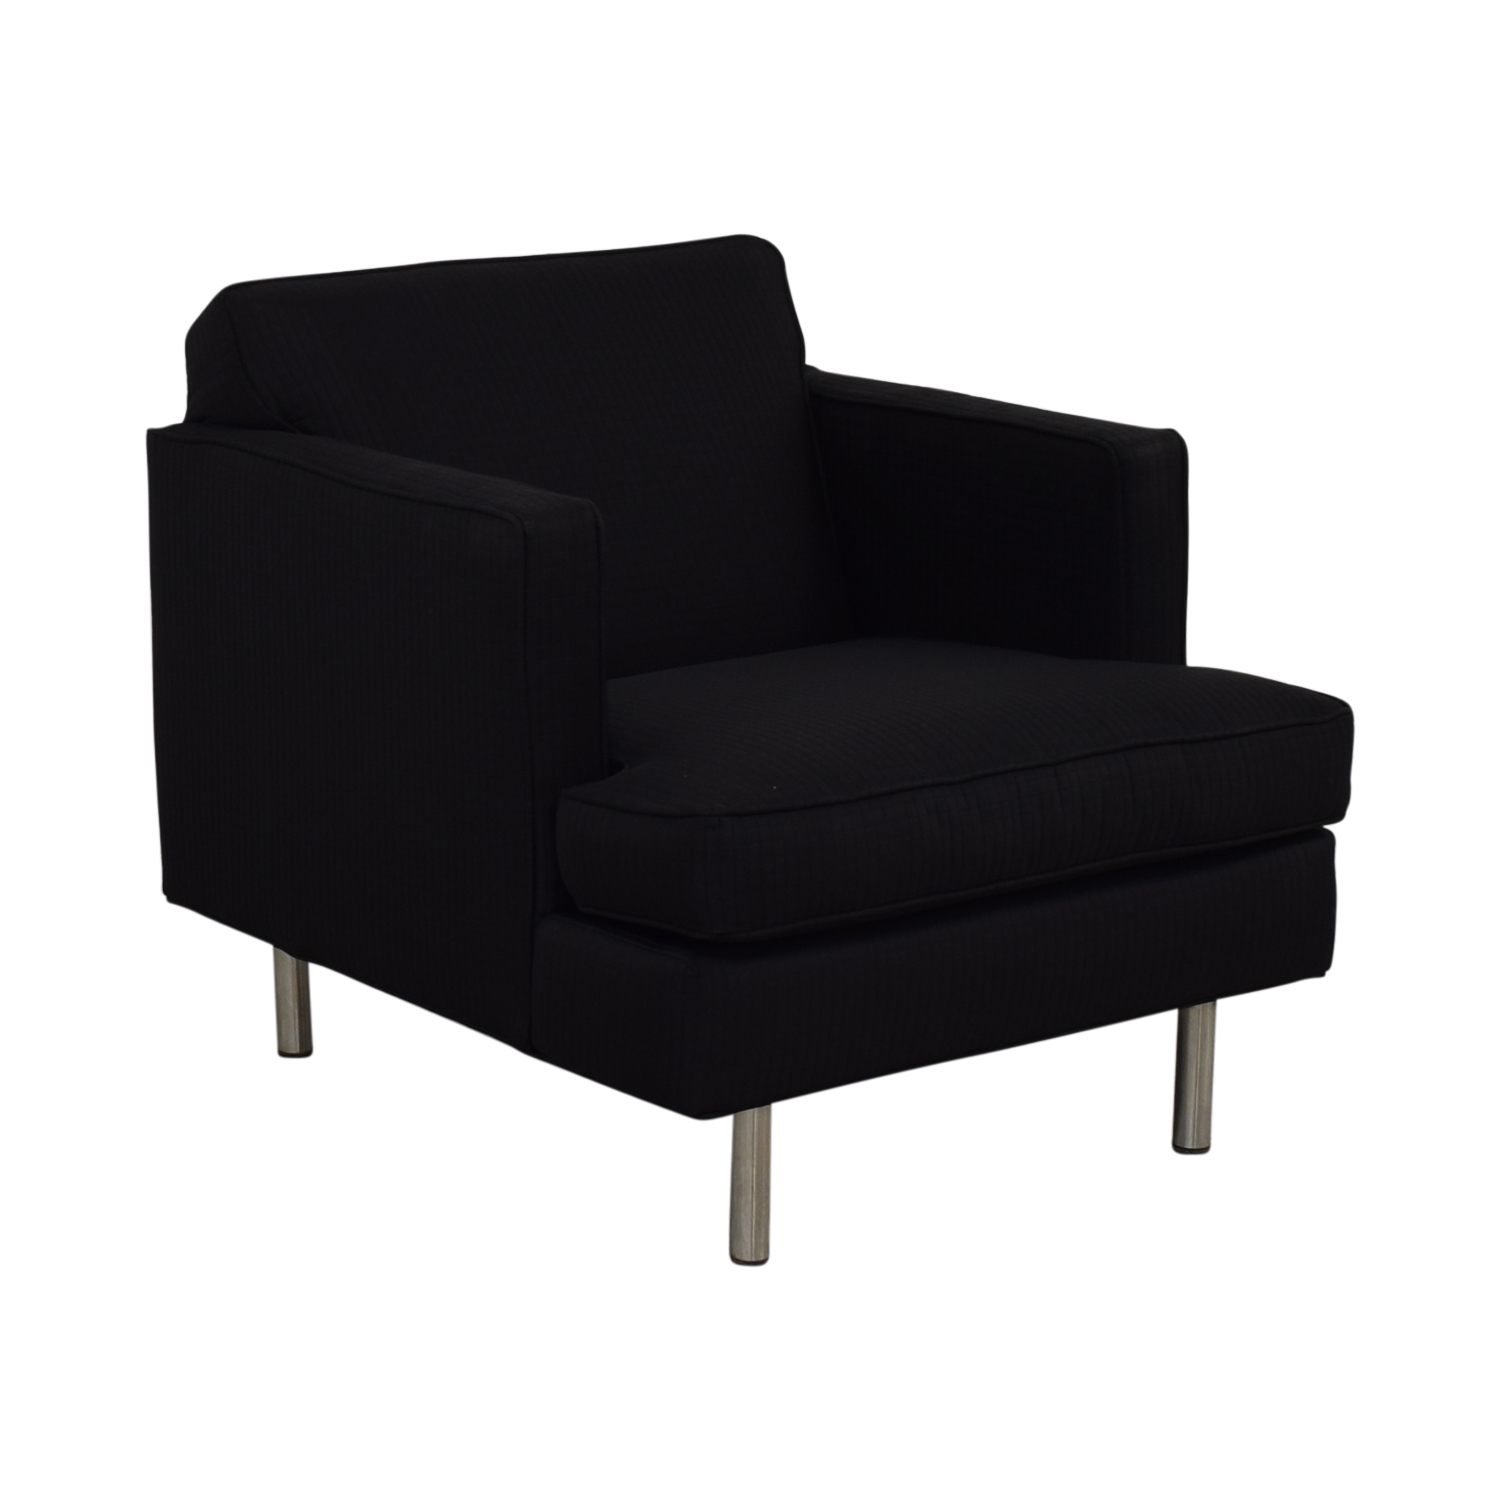 84% OFF   Modern Black Accent Chair / Chairs